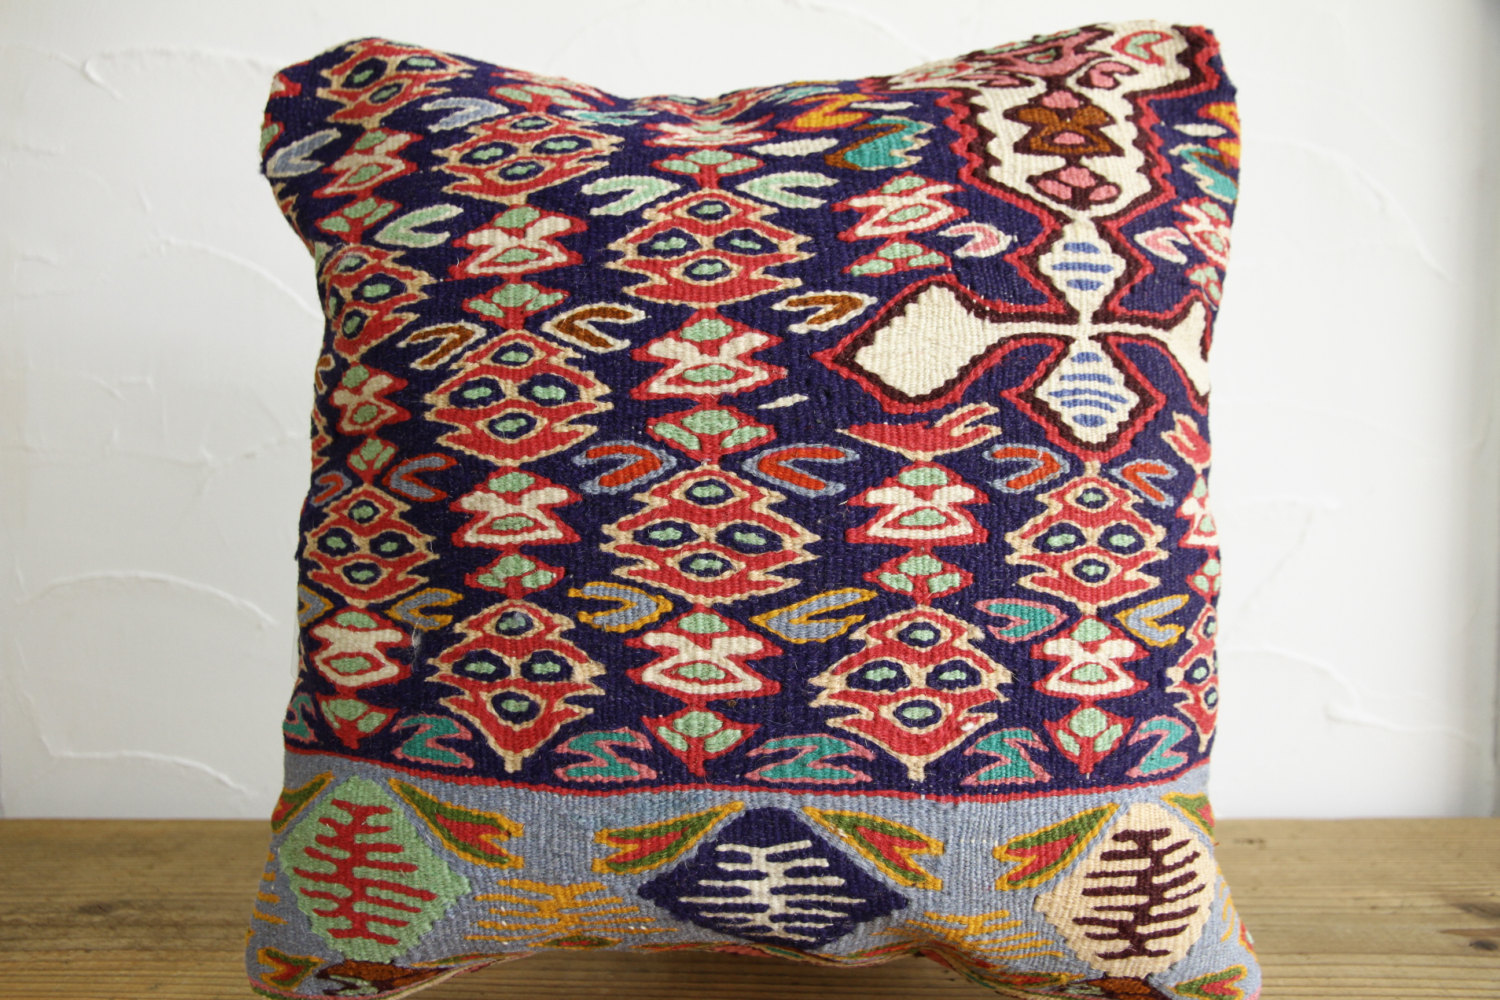 Kilim Pillows |16x16 | Decorative Pillows | 155 | Accent Pillows, Kilim cushion